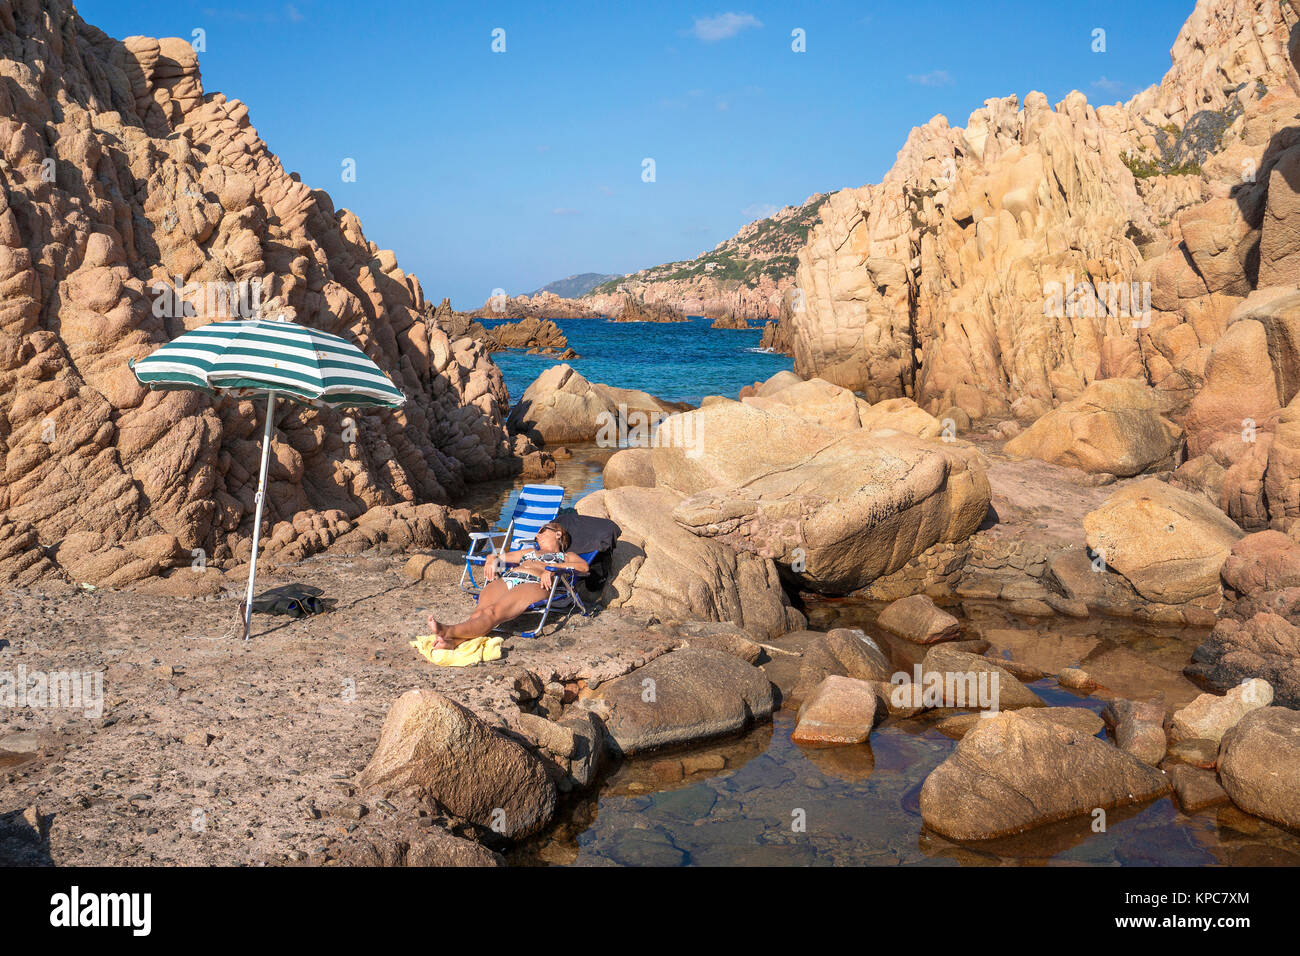 Idyllic bathing beach at rocky coast of Costa Paradiso, Porphyry rocks, Sardinia, Italy, Mediterranean  sea, Europe Stock Photo